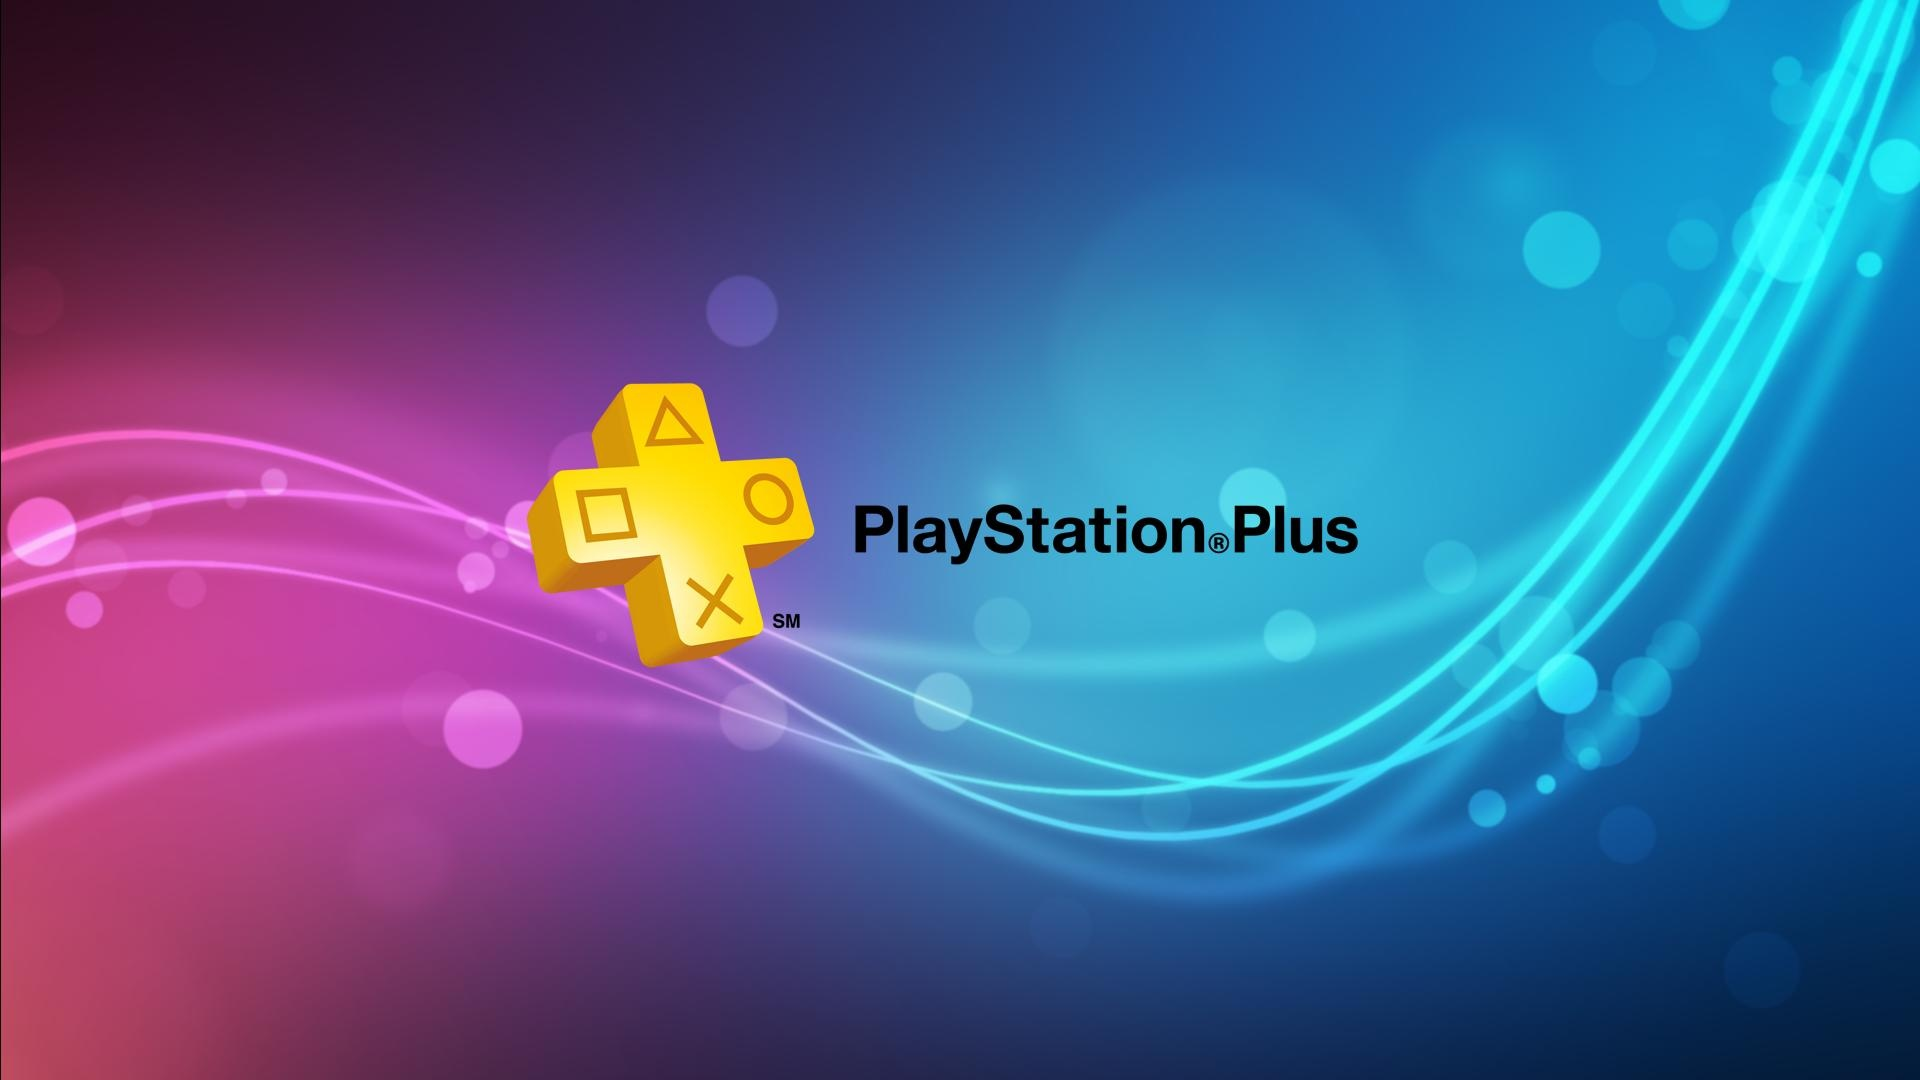 playstation plus 2019